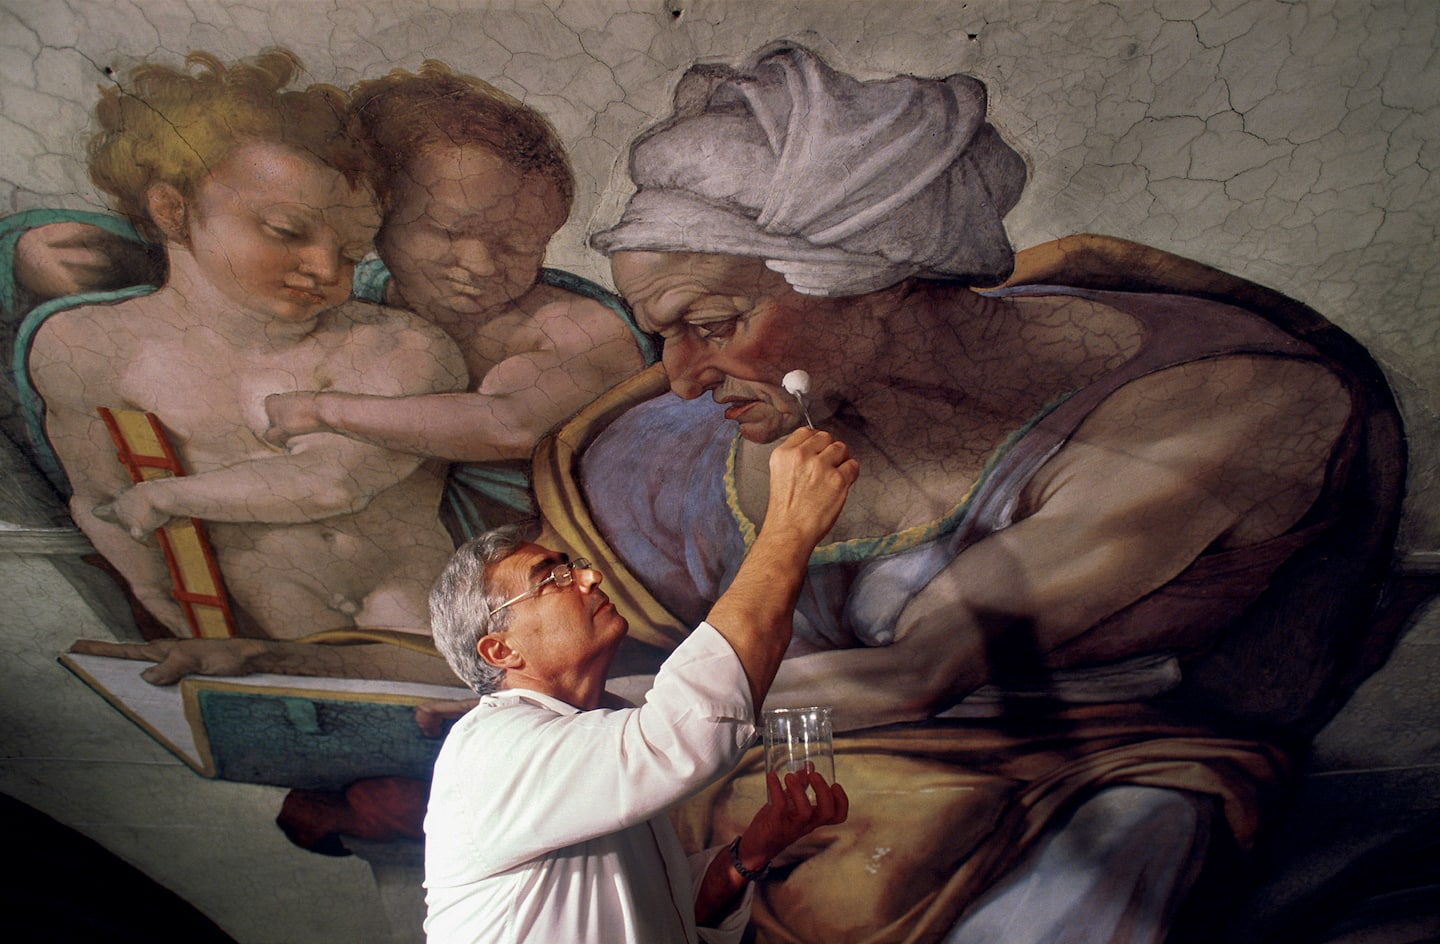 Gianluigi Colalucci dies at 91; Vatican conservator led restoration of Michelangelo's Sistine Chapel